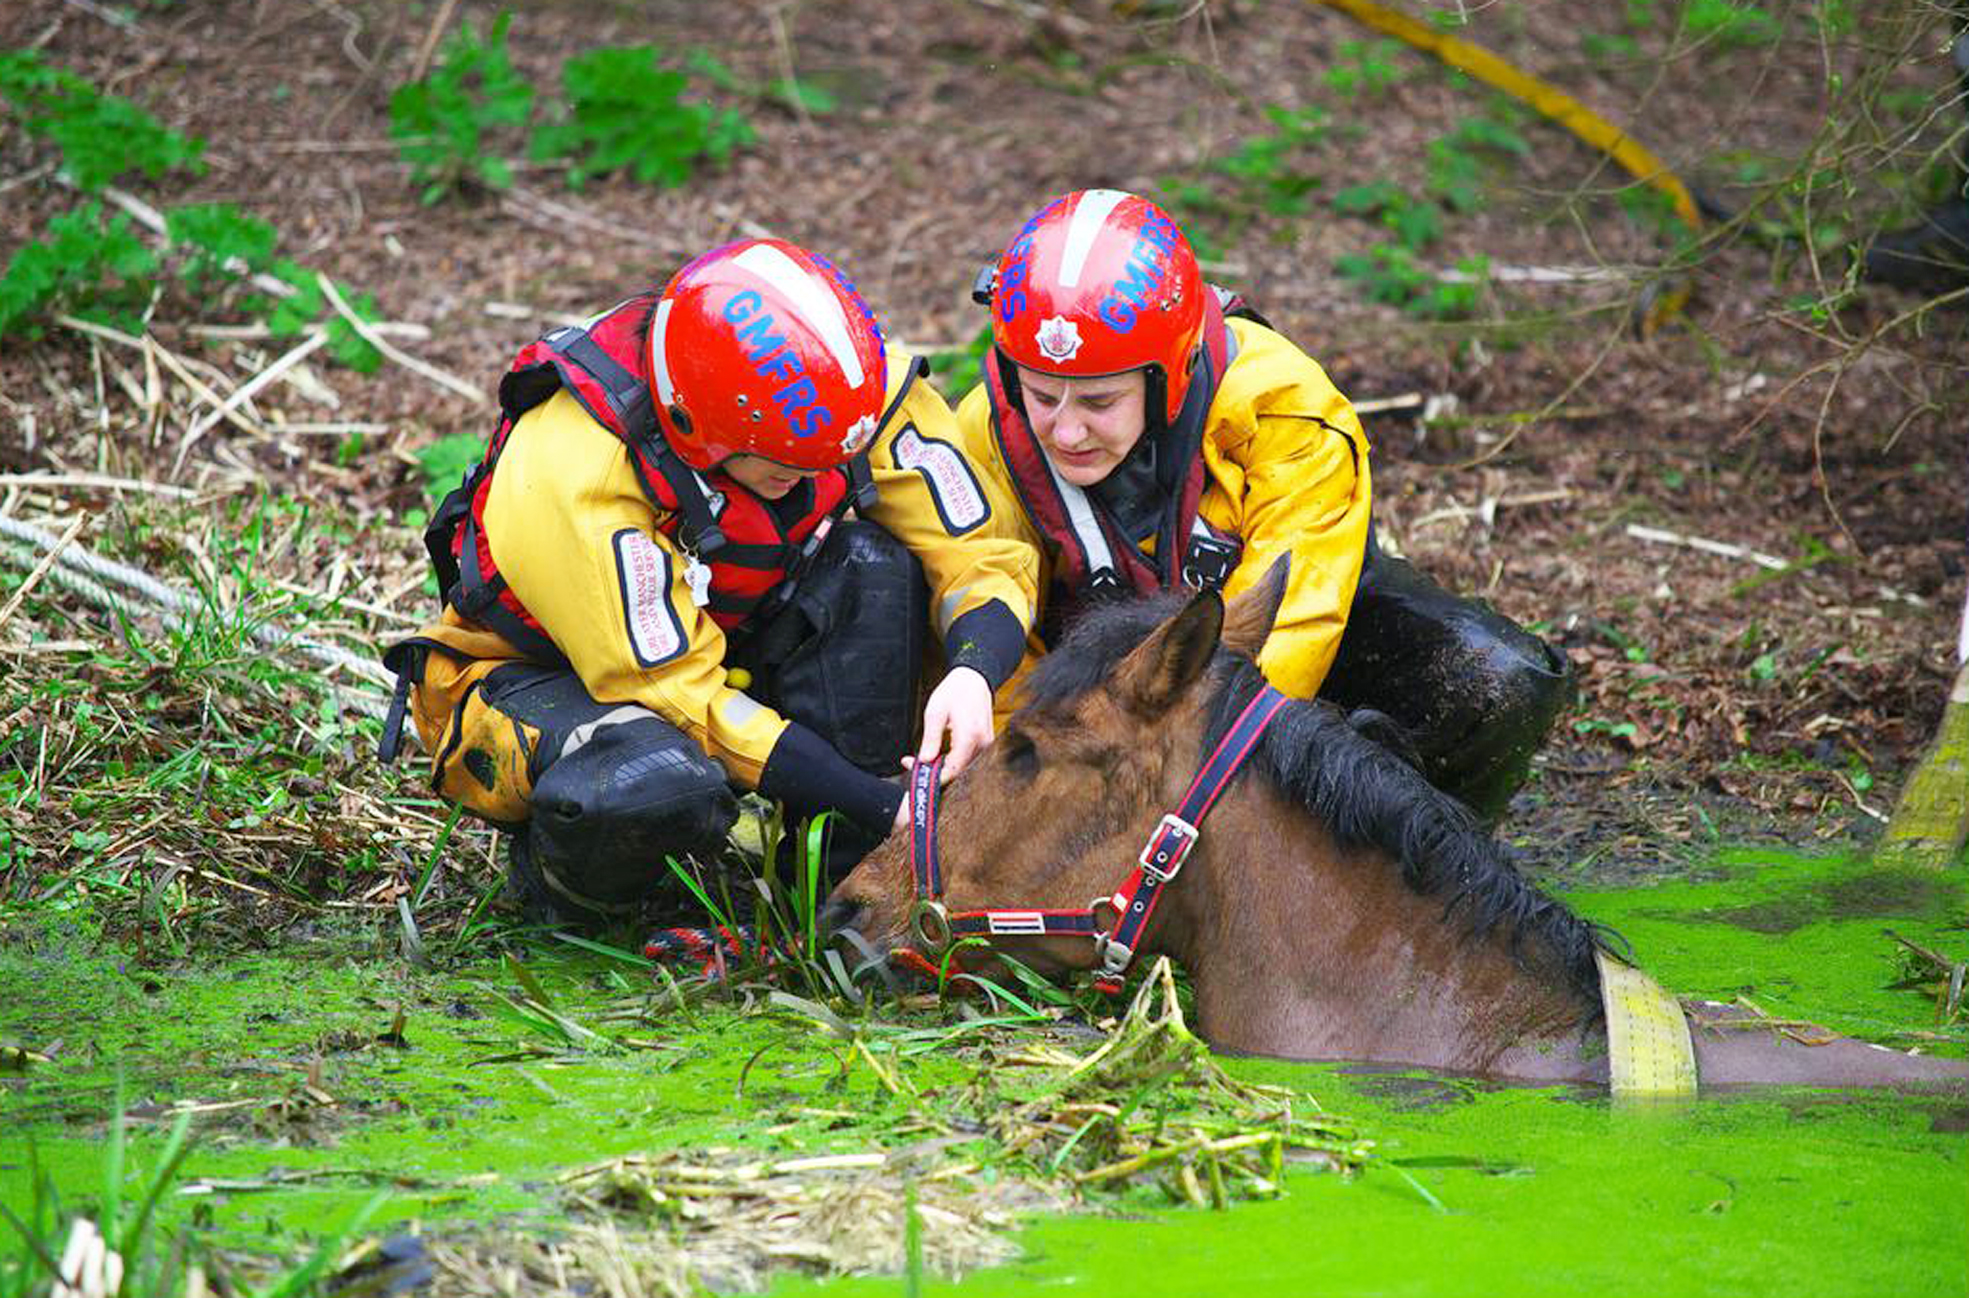 VIDEO: Ten firefighters pull one-eyed horse from river